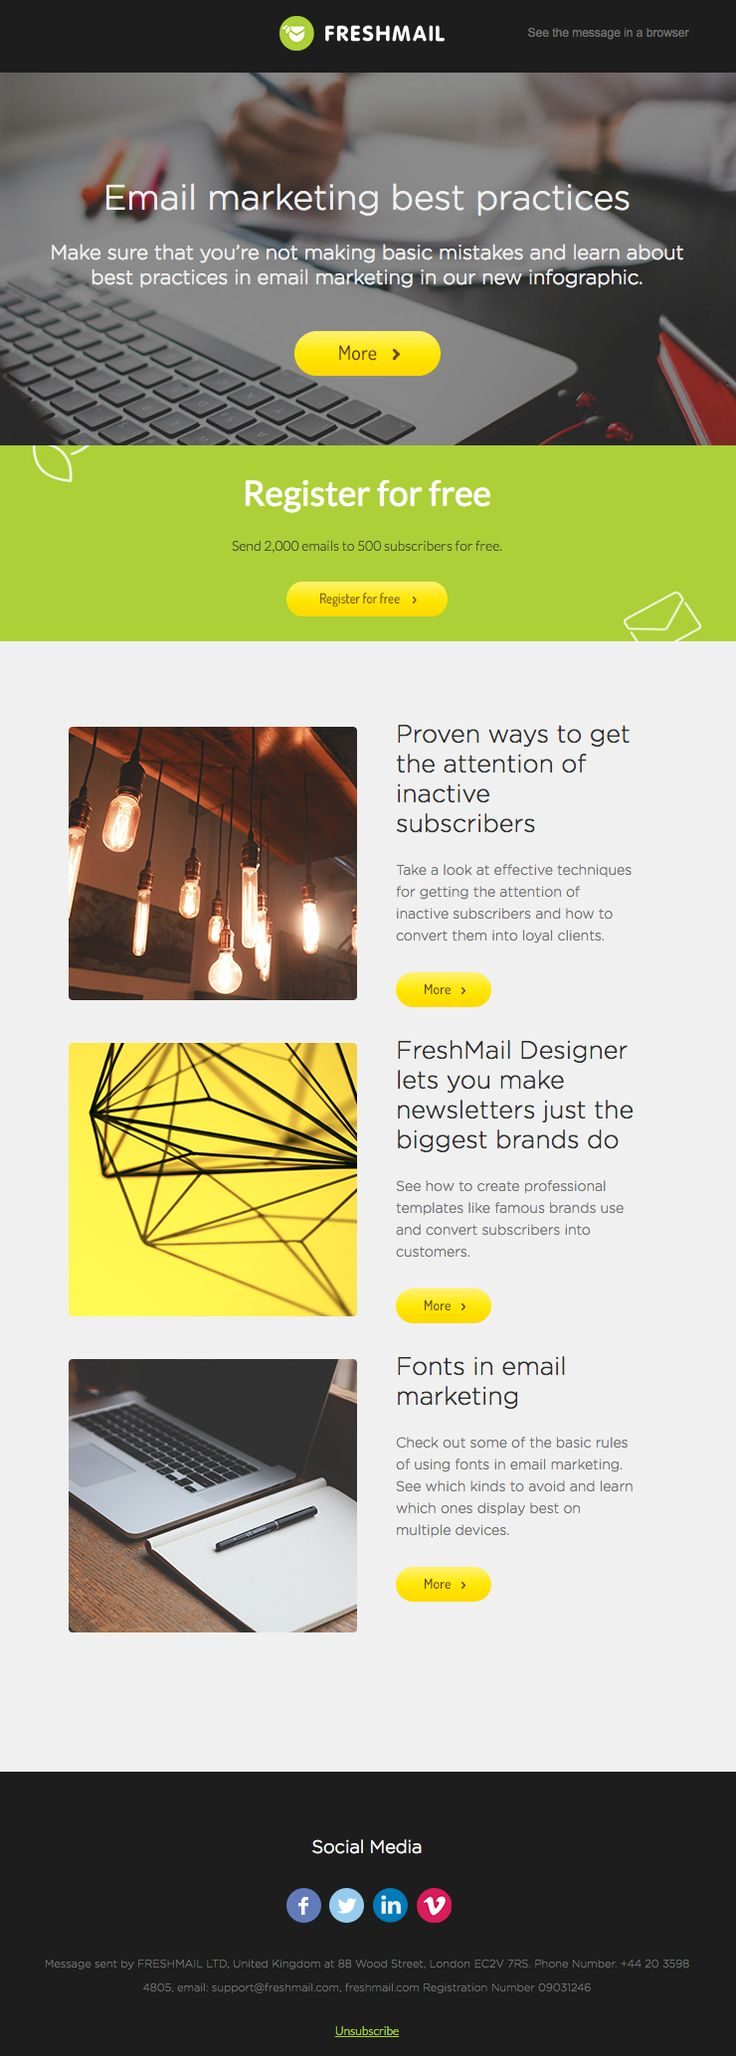 How to Design Visually Appealing Emails